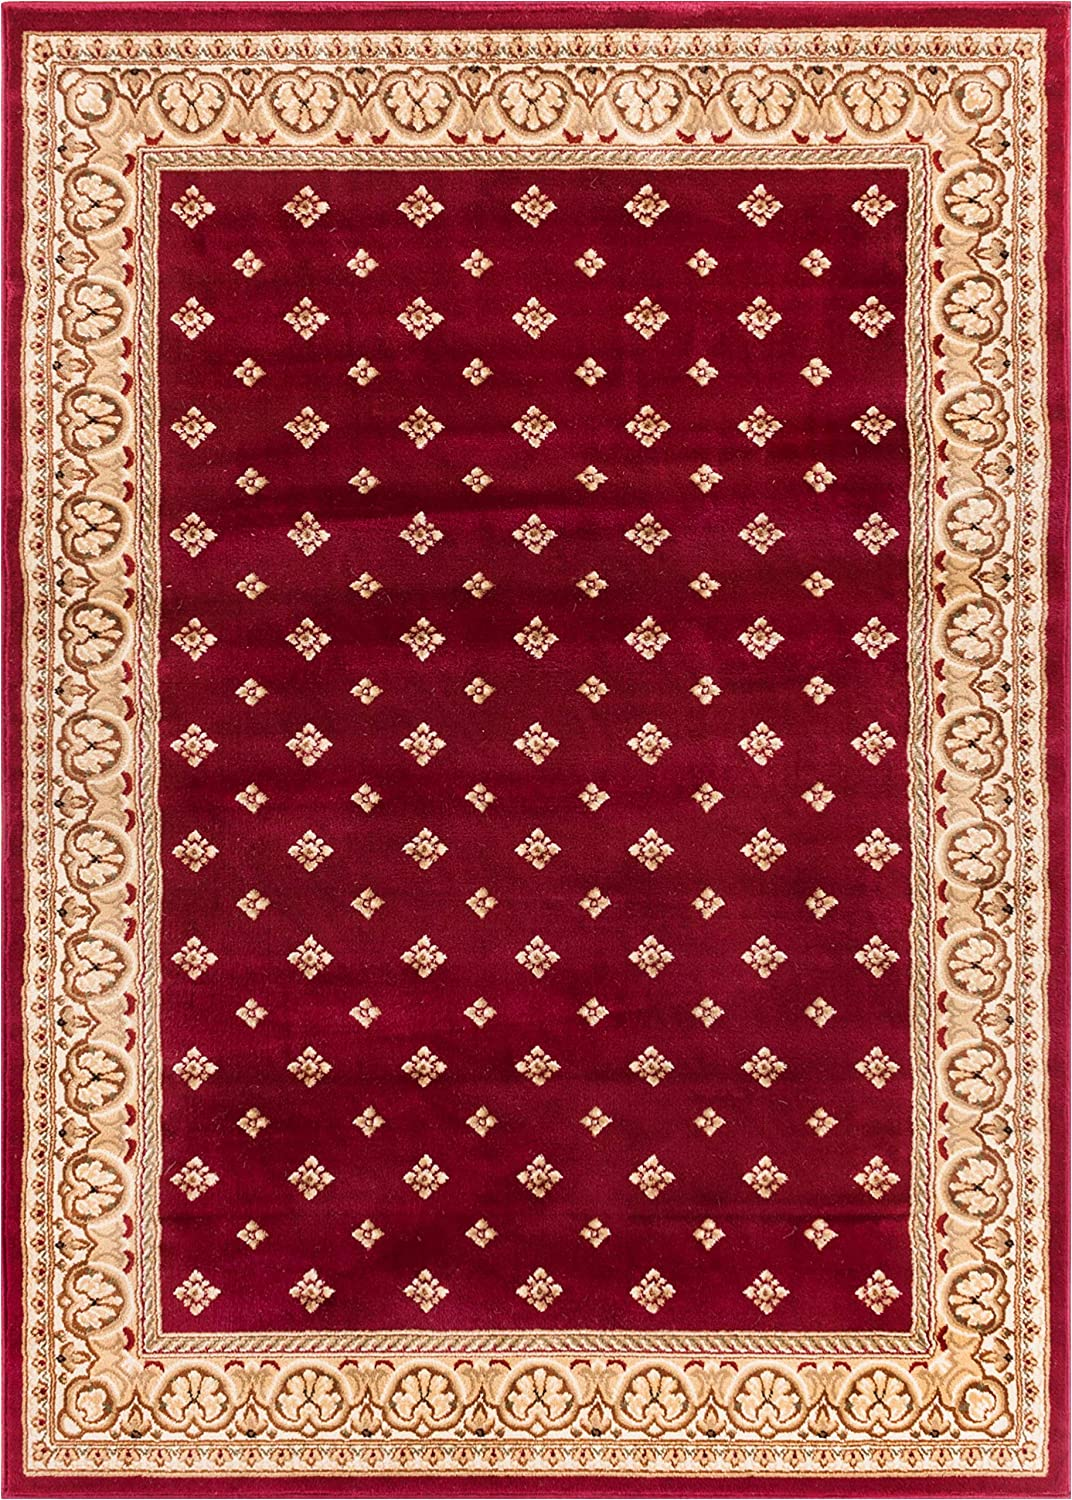 Well Woven Barclay Hudson Terrace Red Traditional Area Rug 7'10